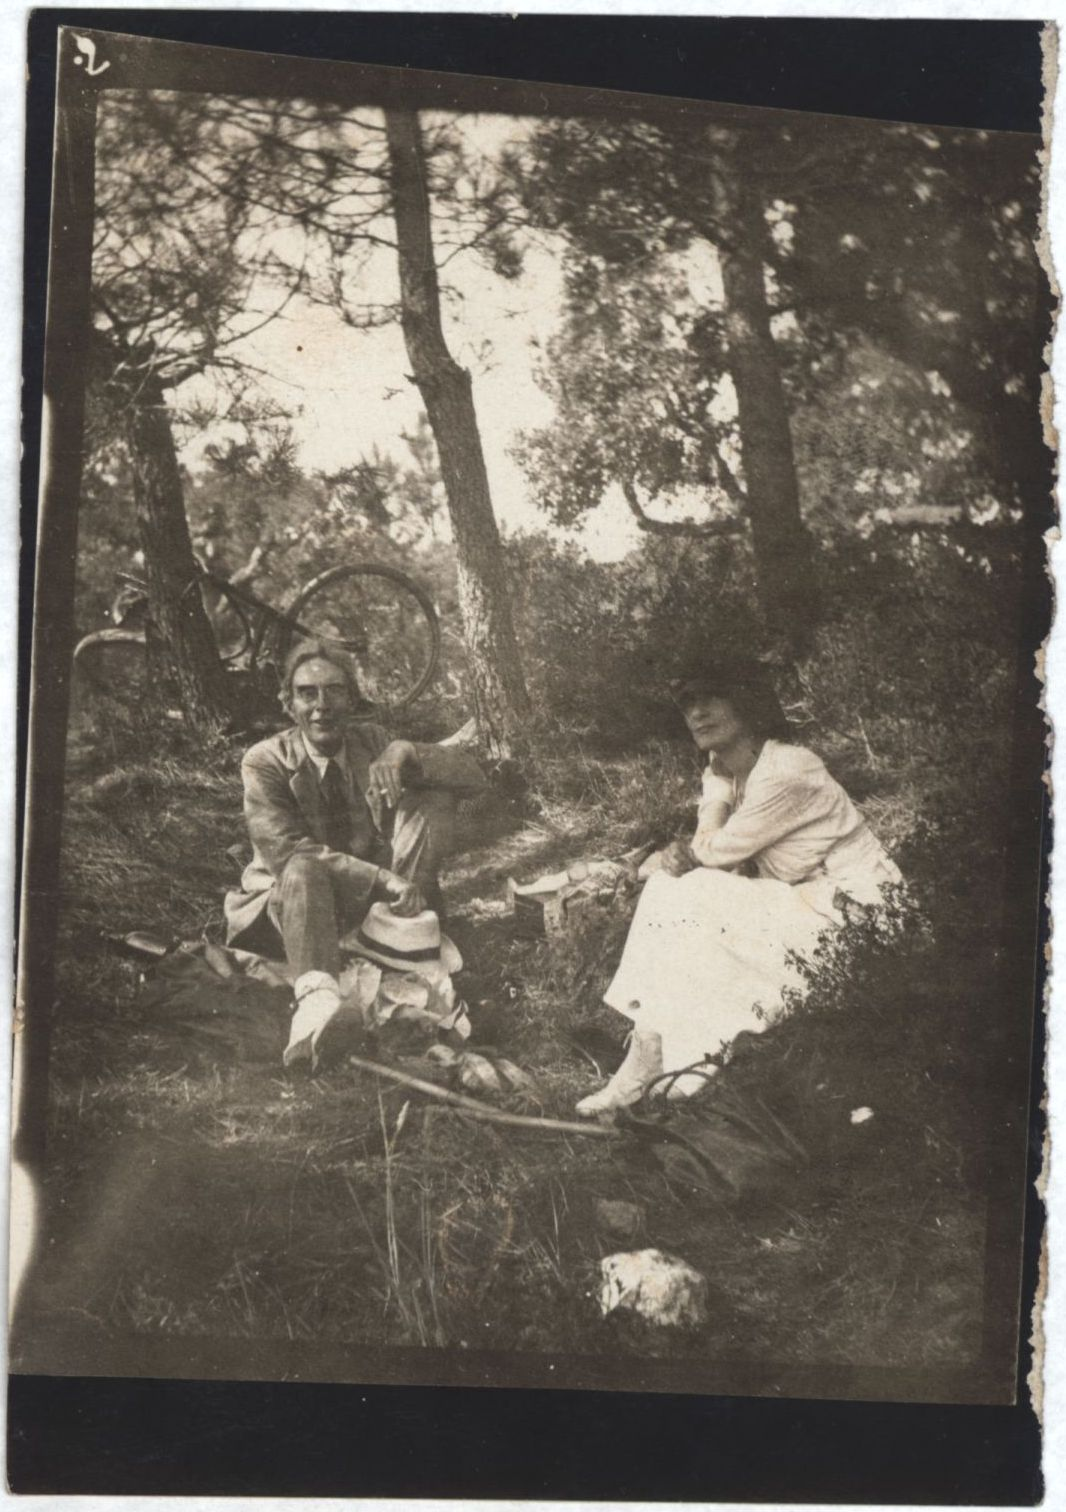 Roger Fry with with Mela Muter at St Tropez. [REF/6/12]